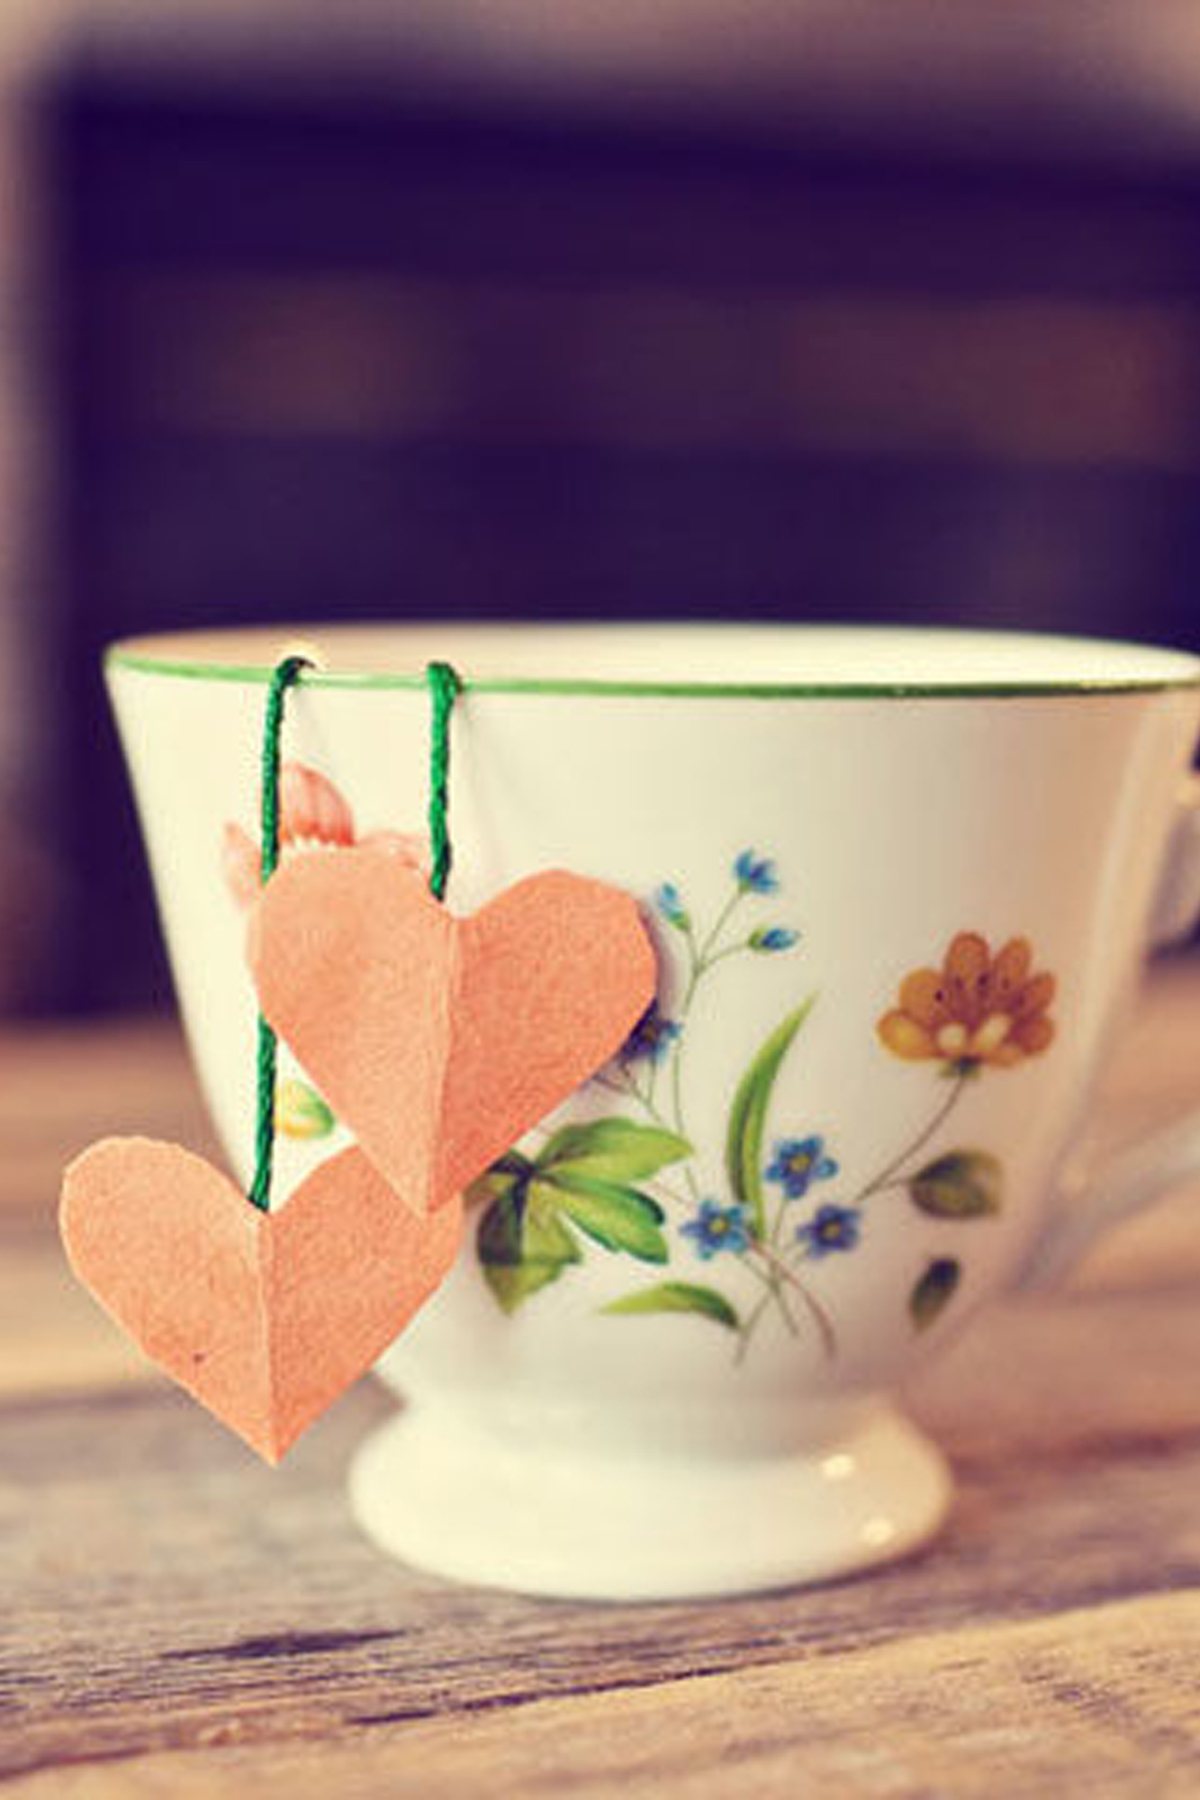 42 valentines day crafts and diy ideas best ideas for valentines day crafts - Craft Ideas For Valentines Day